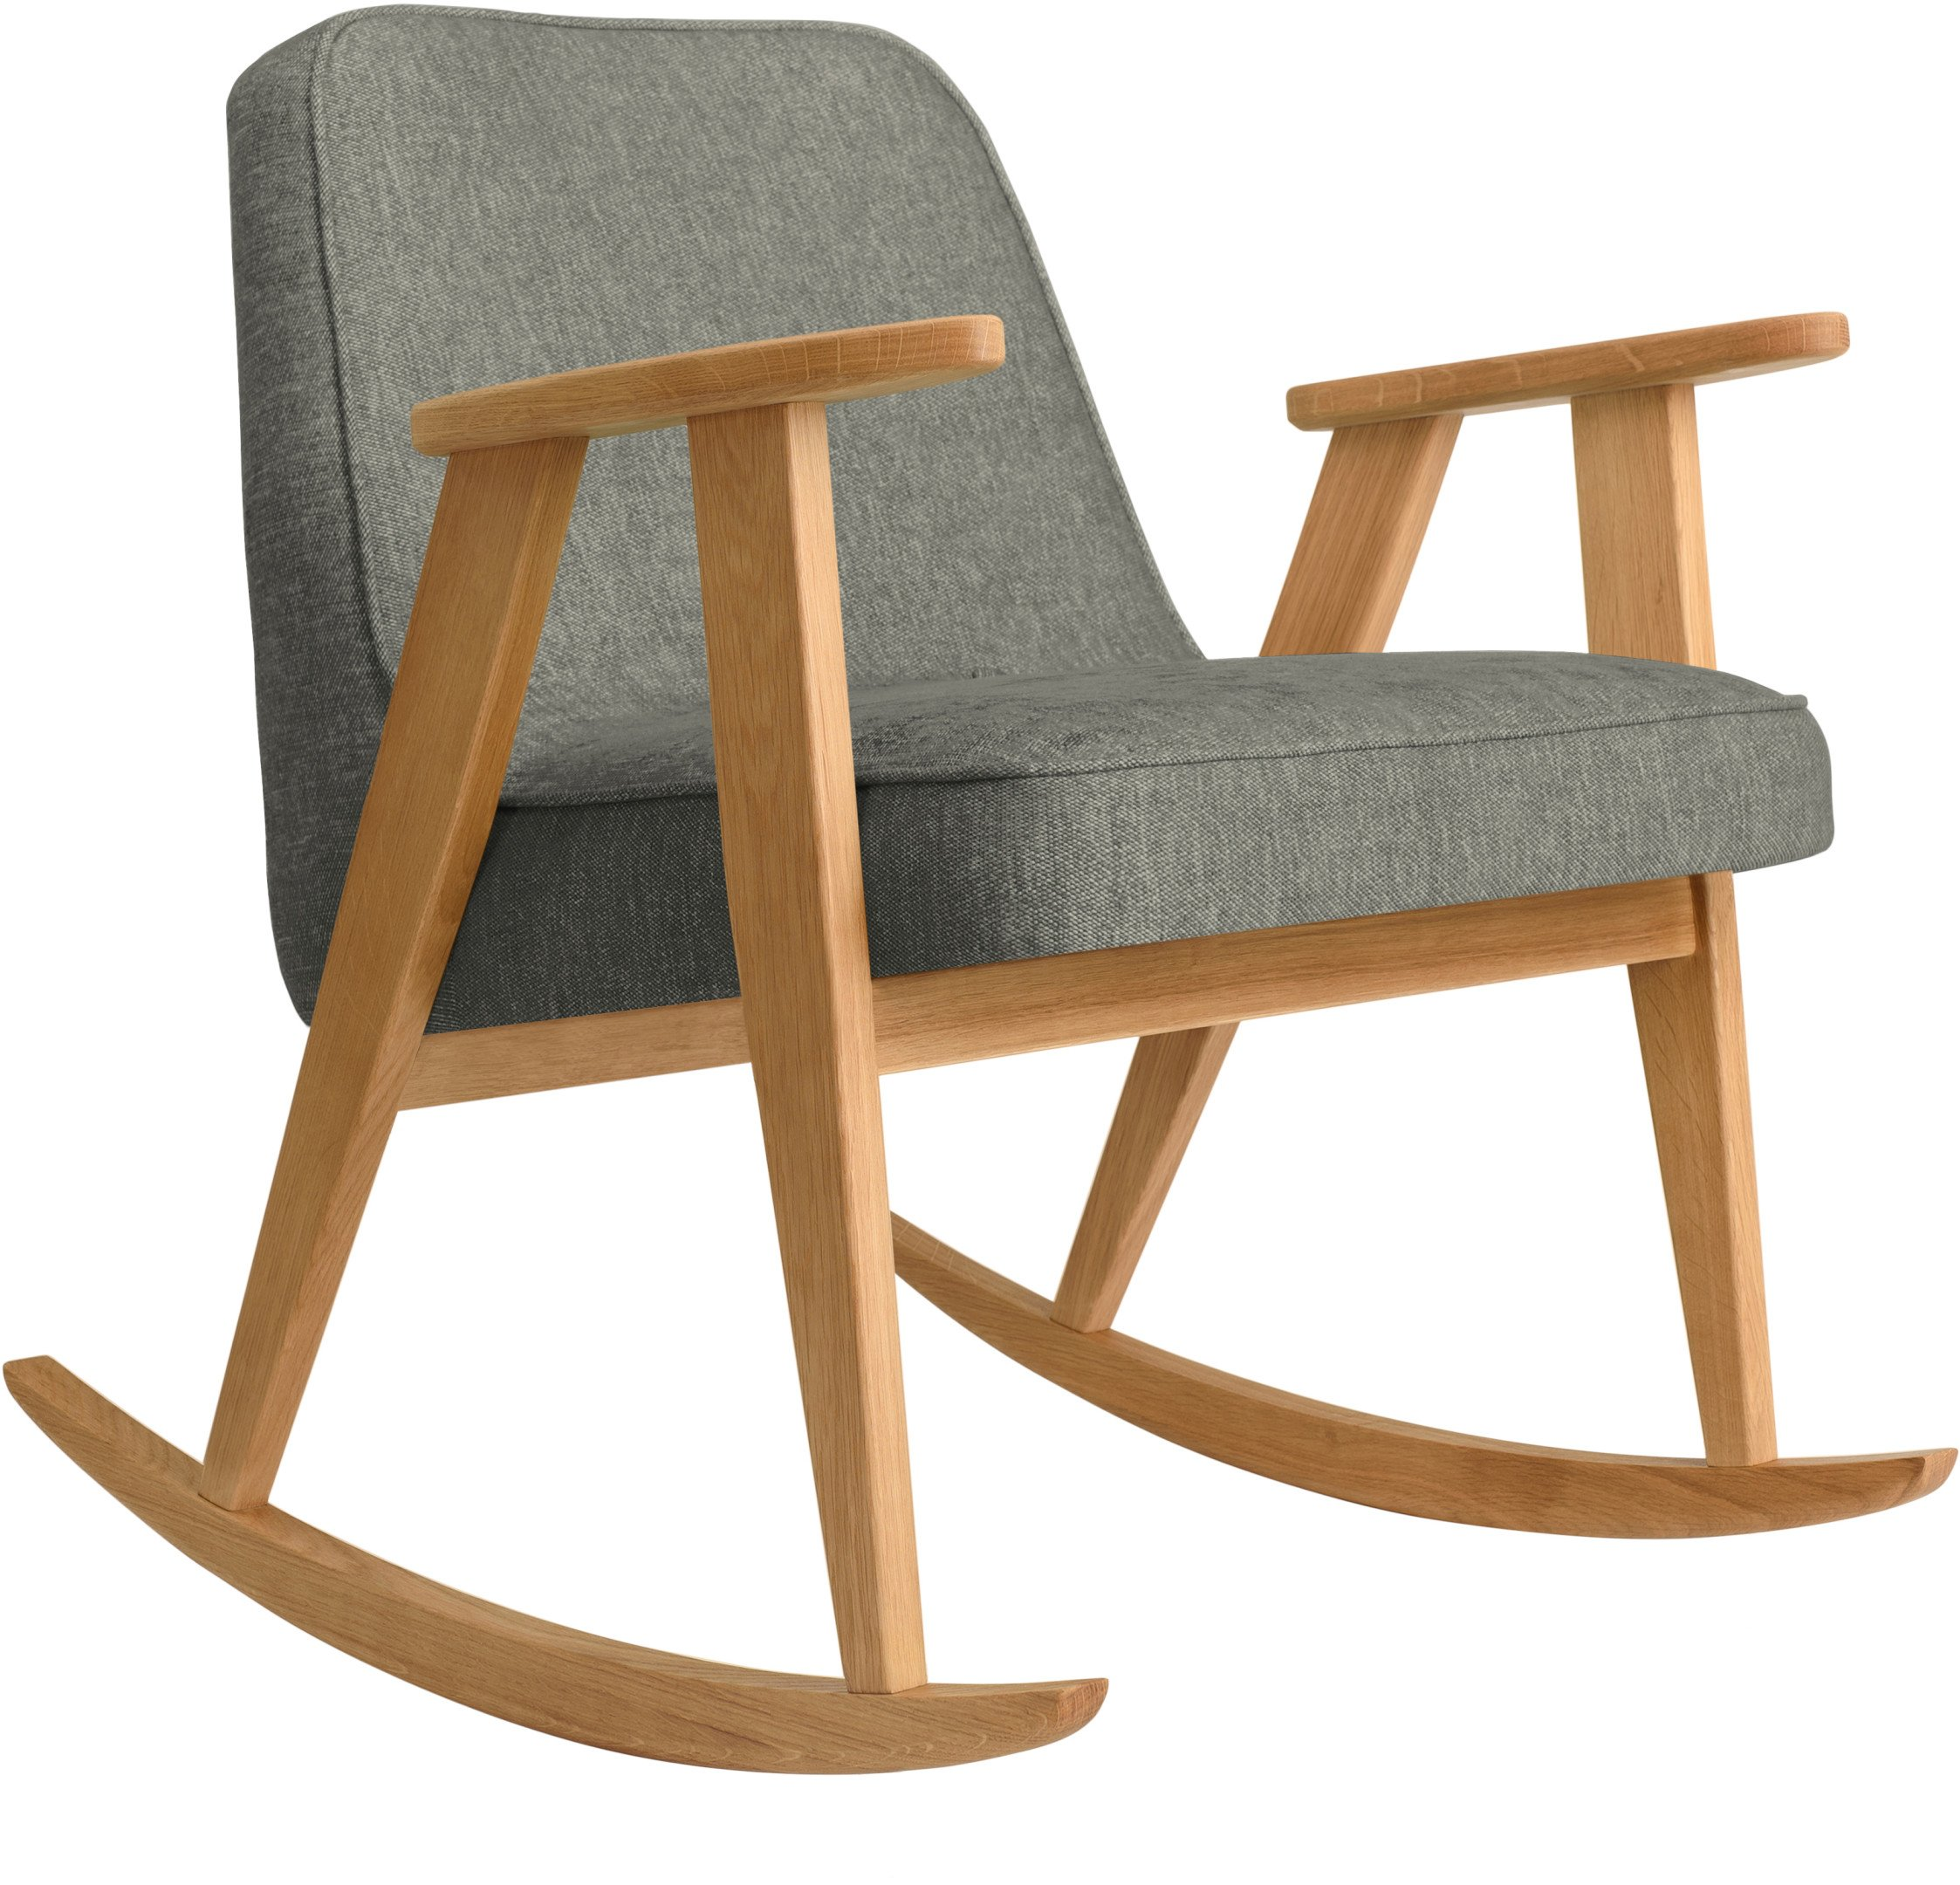 366 Rocking Chair Loft Grey (natural oak) by Józef Chierowski